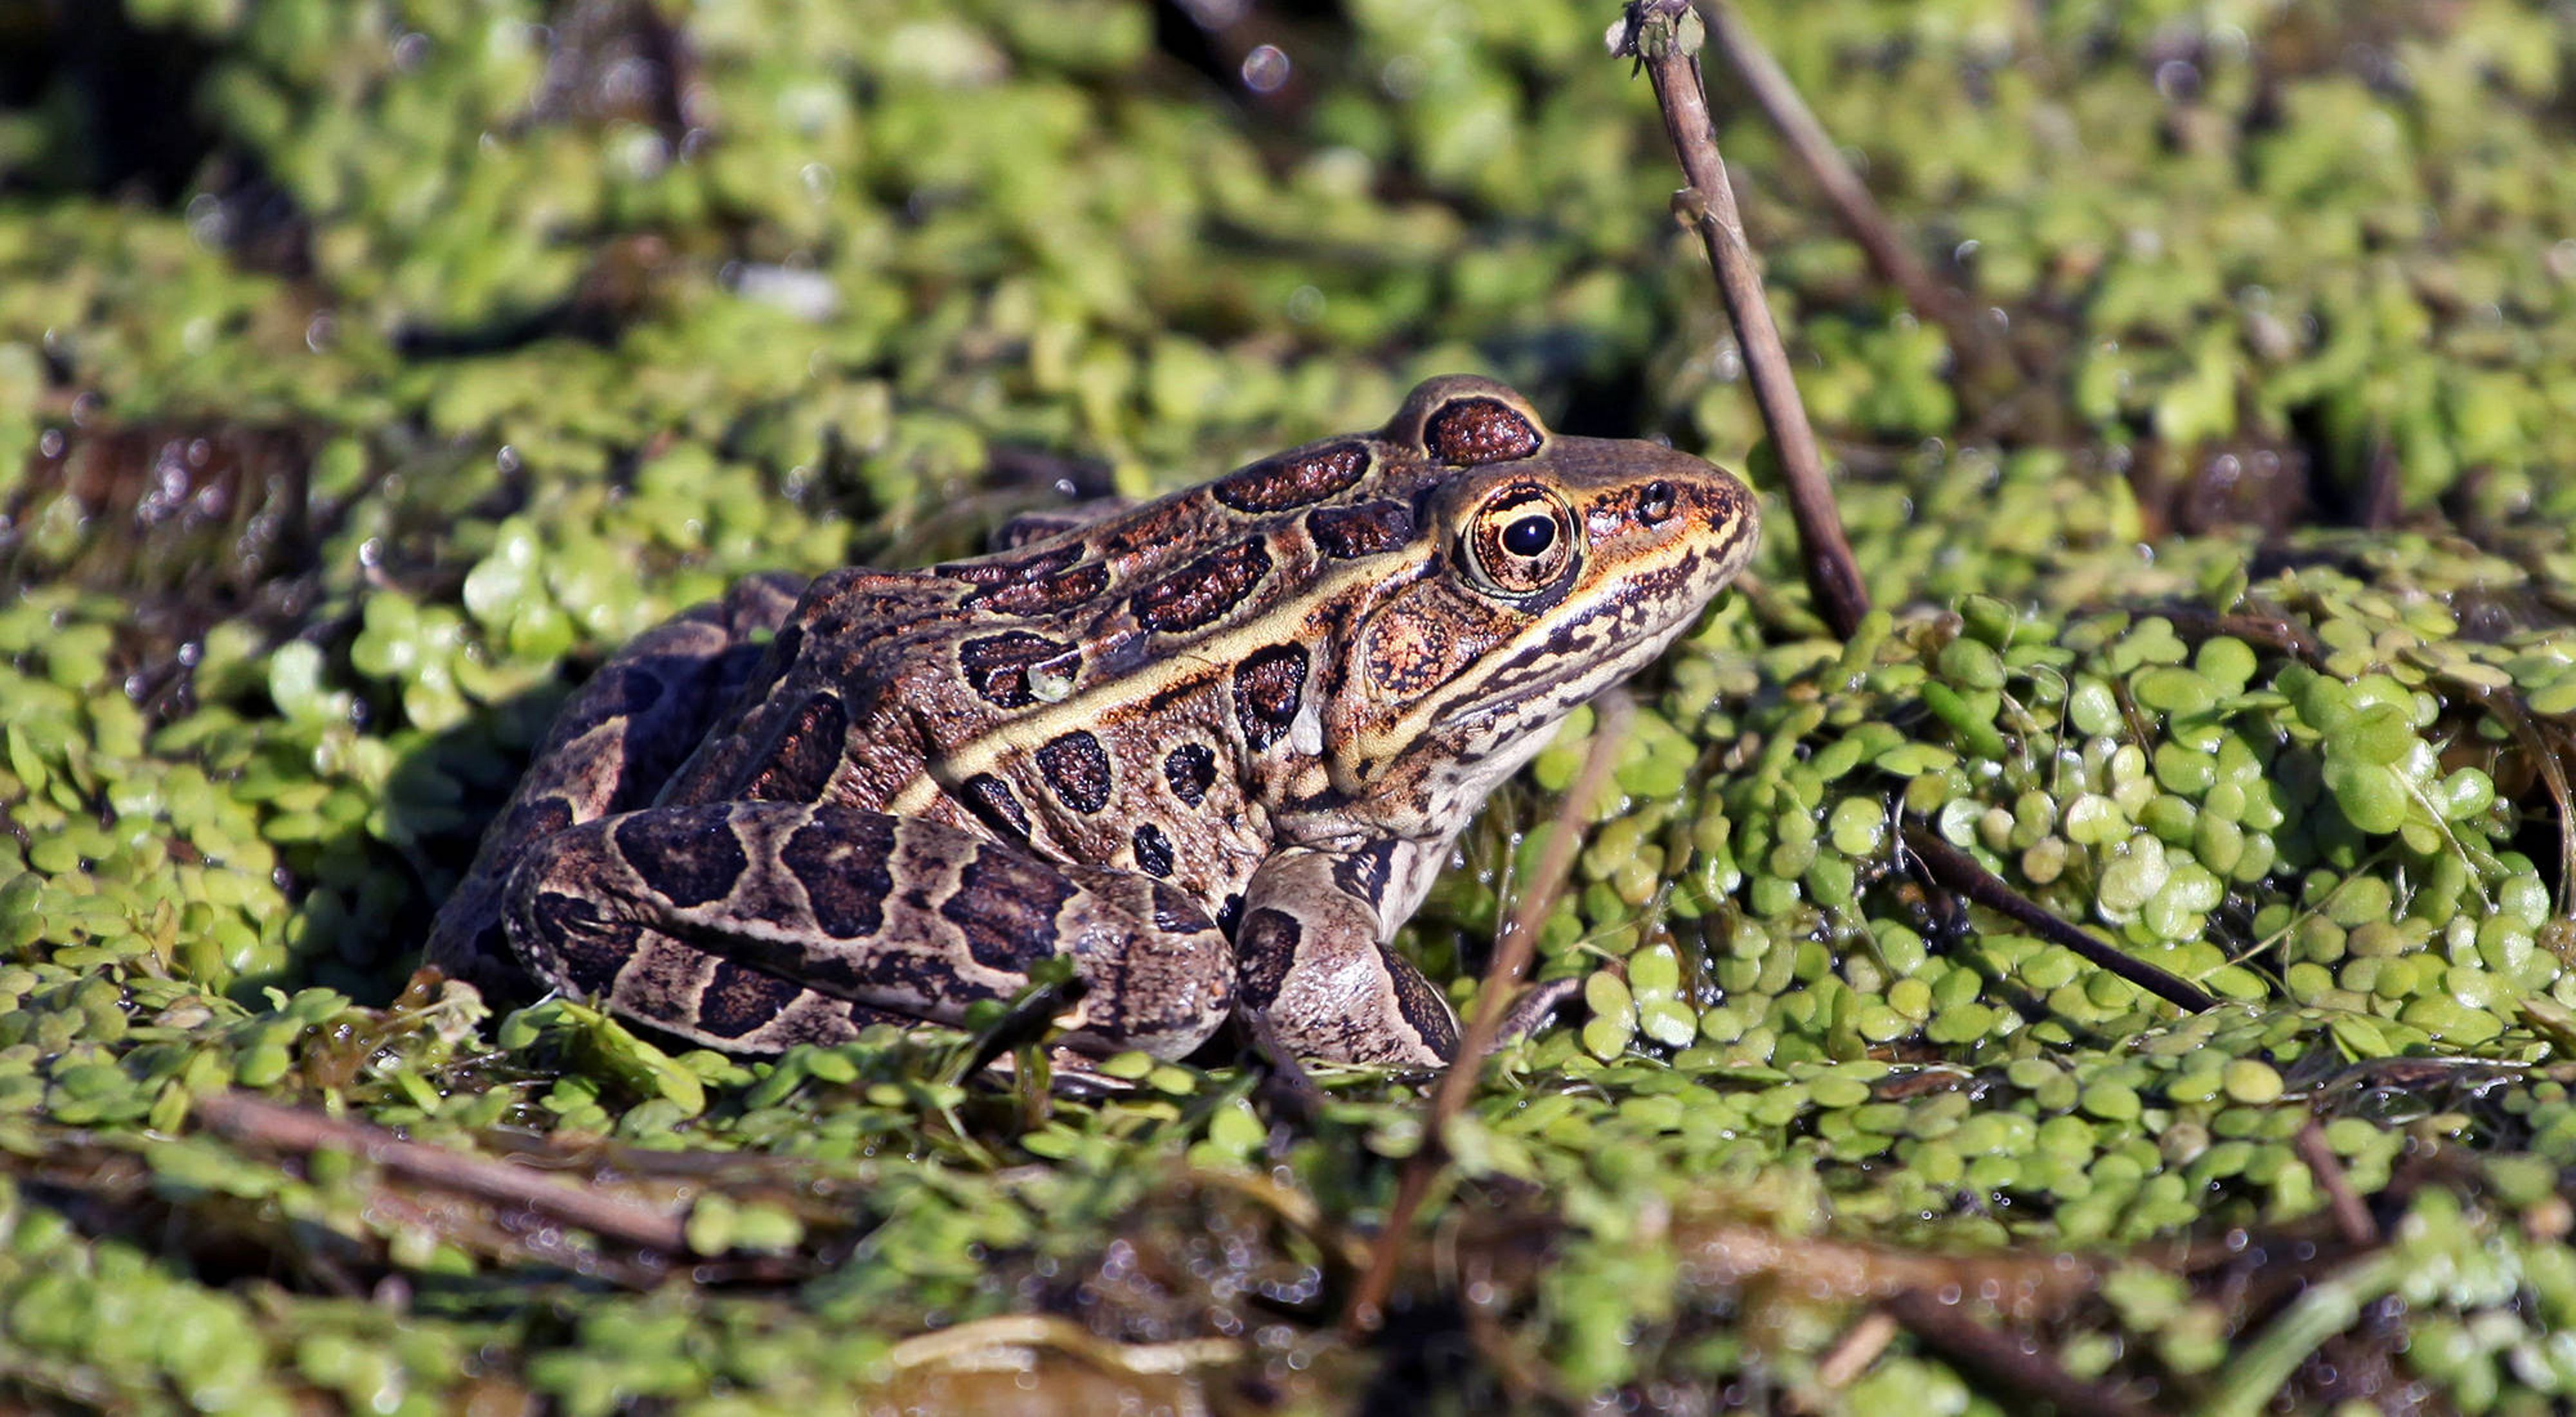 Brown frog with black spots sitting in a wetland with lush green plants.